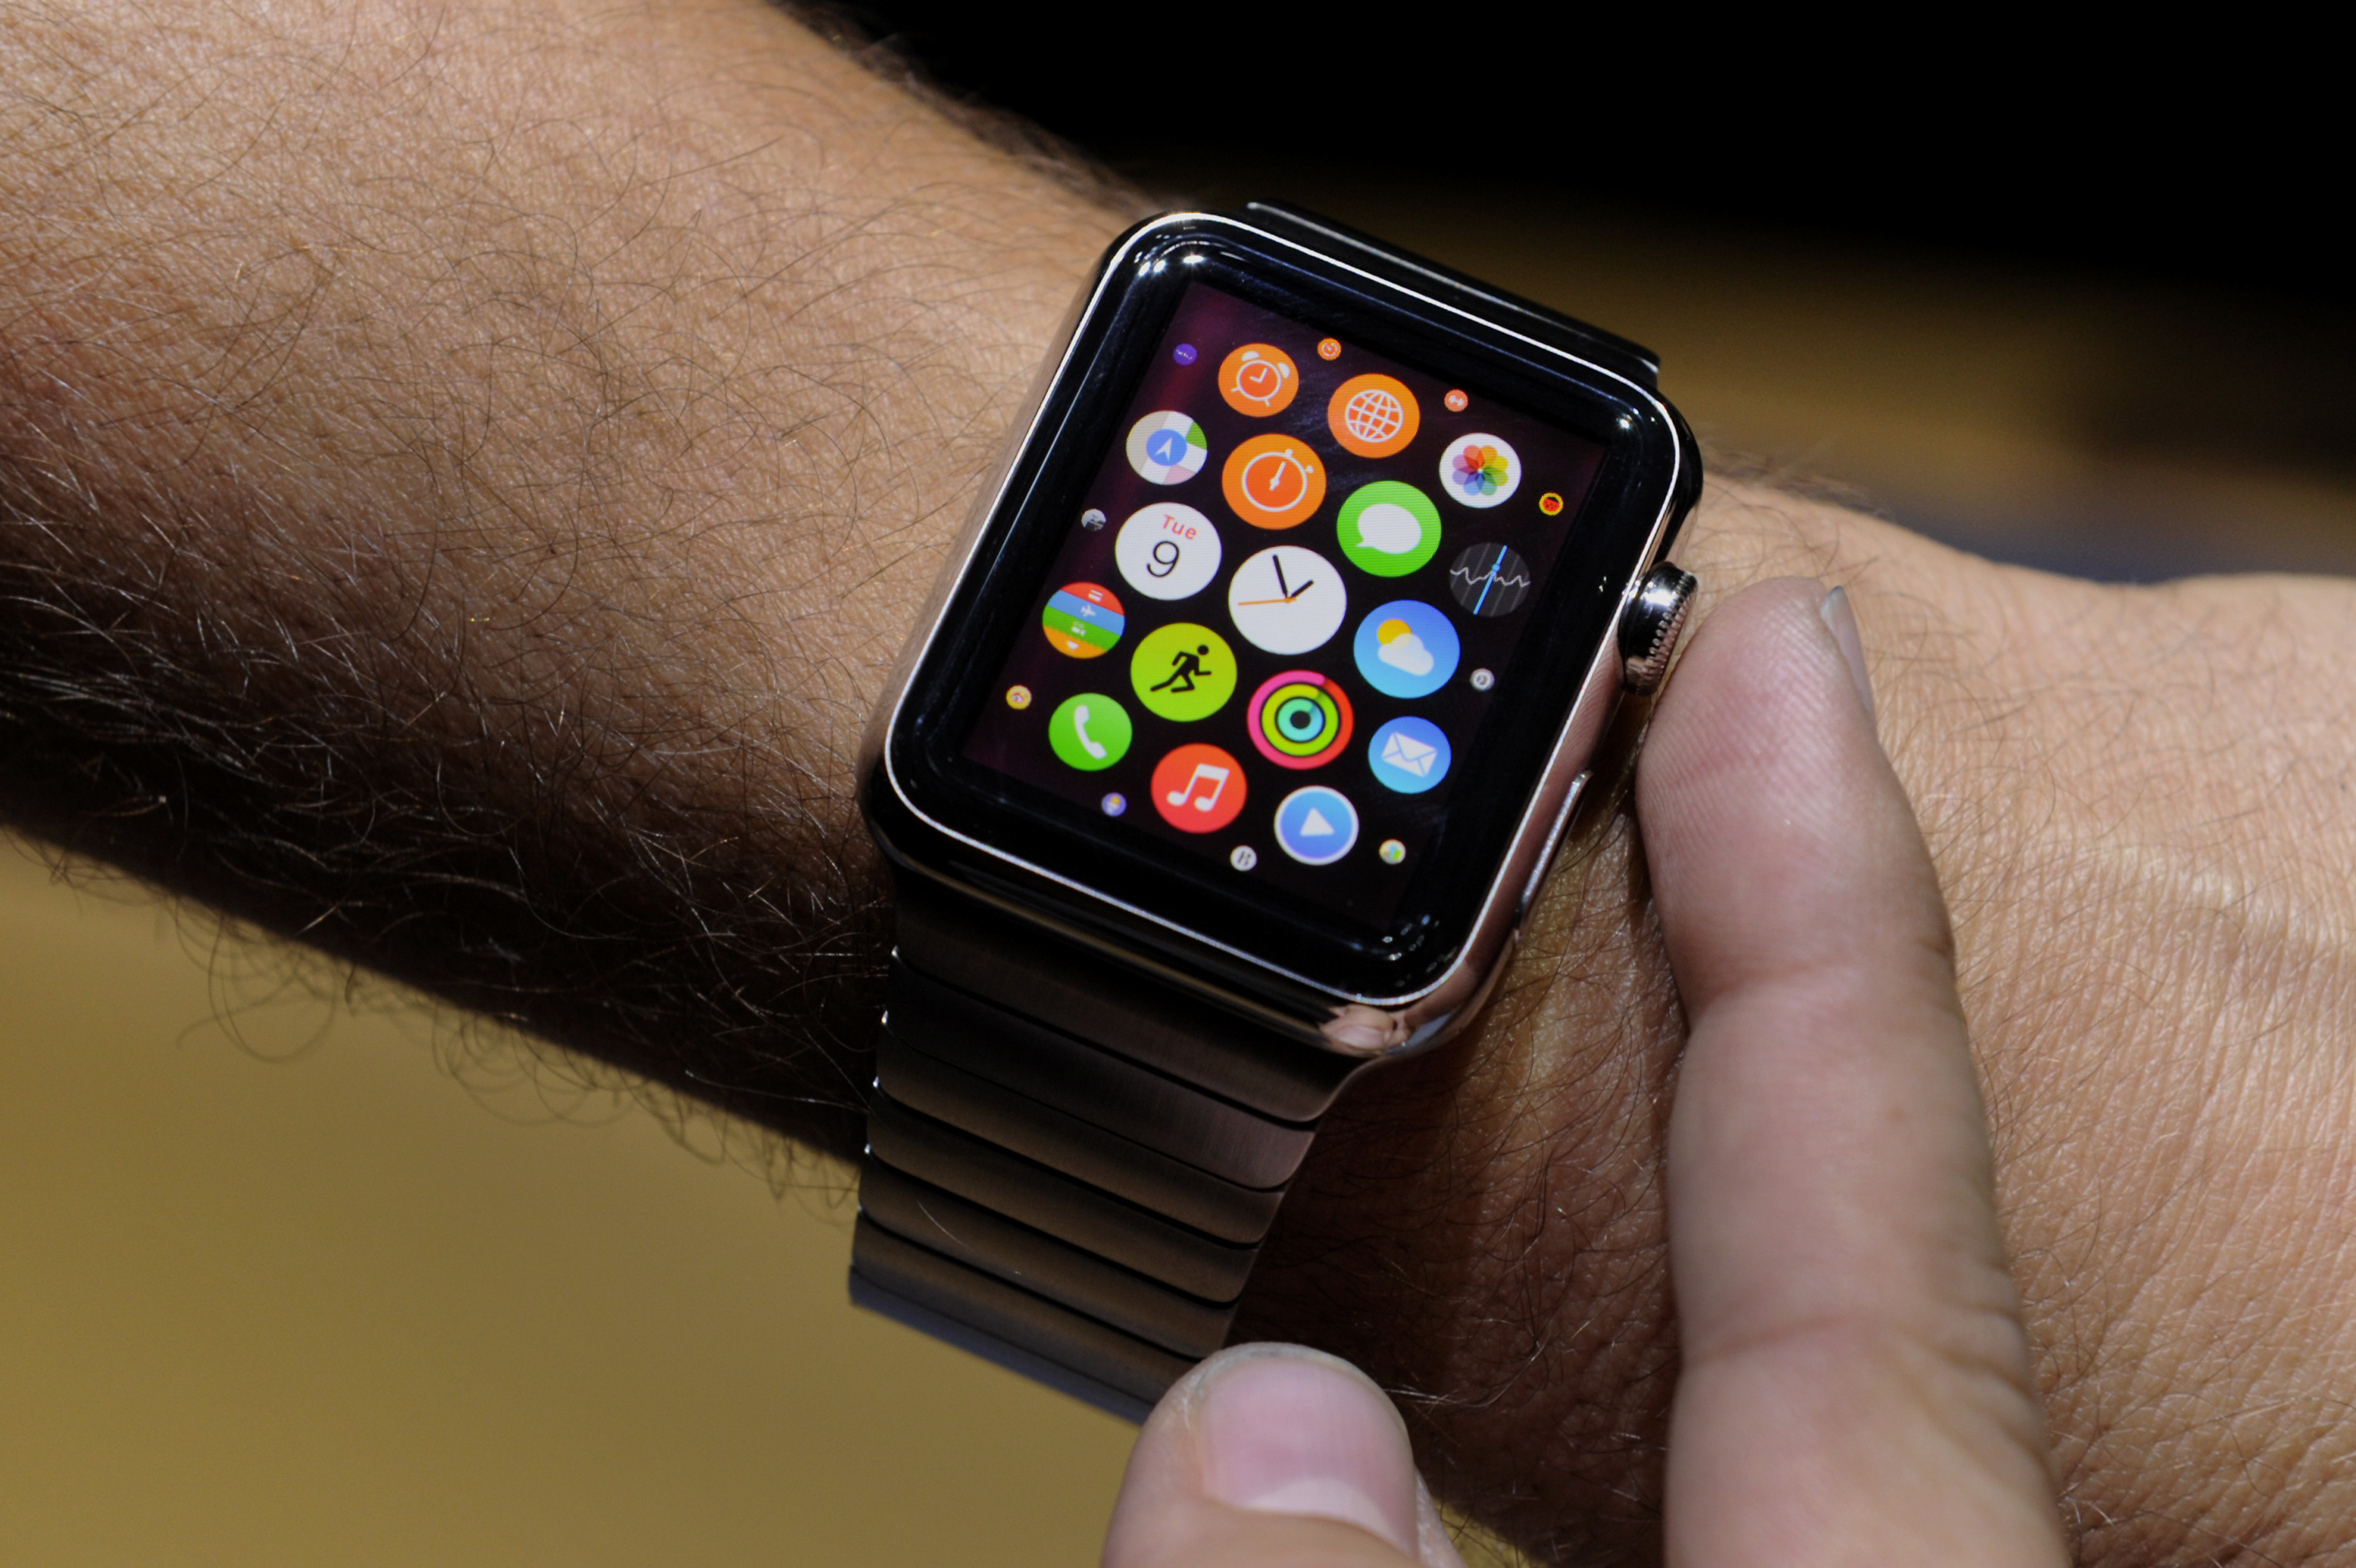 An attendee demonstrates the Apple Watch after a product announcement at Flint Center in Cupertino, Calif, on Sept. 9, 2014.